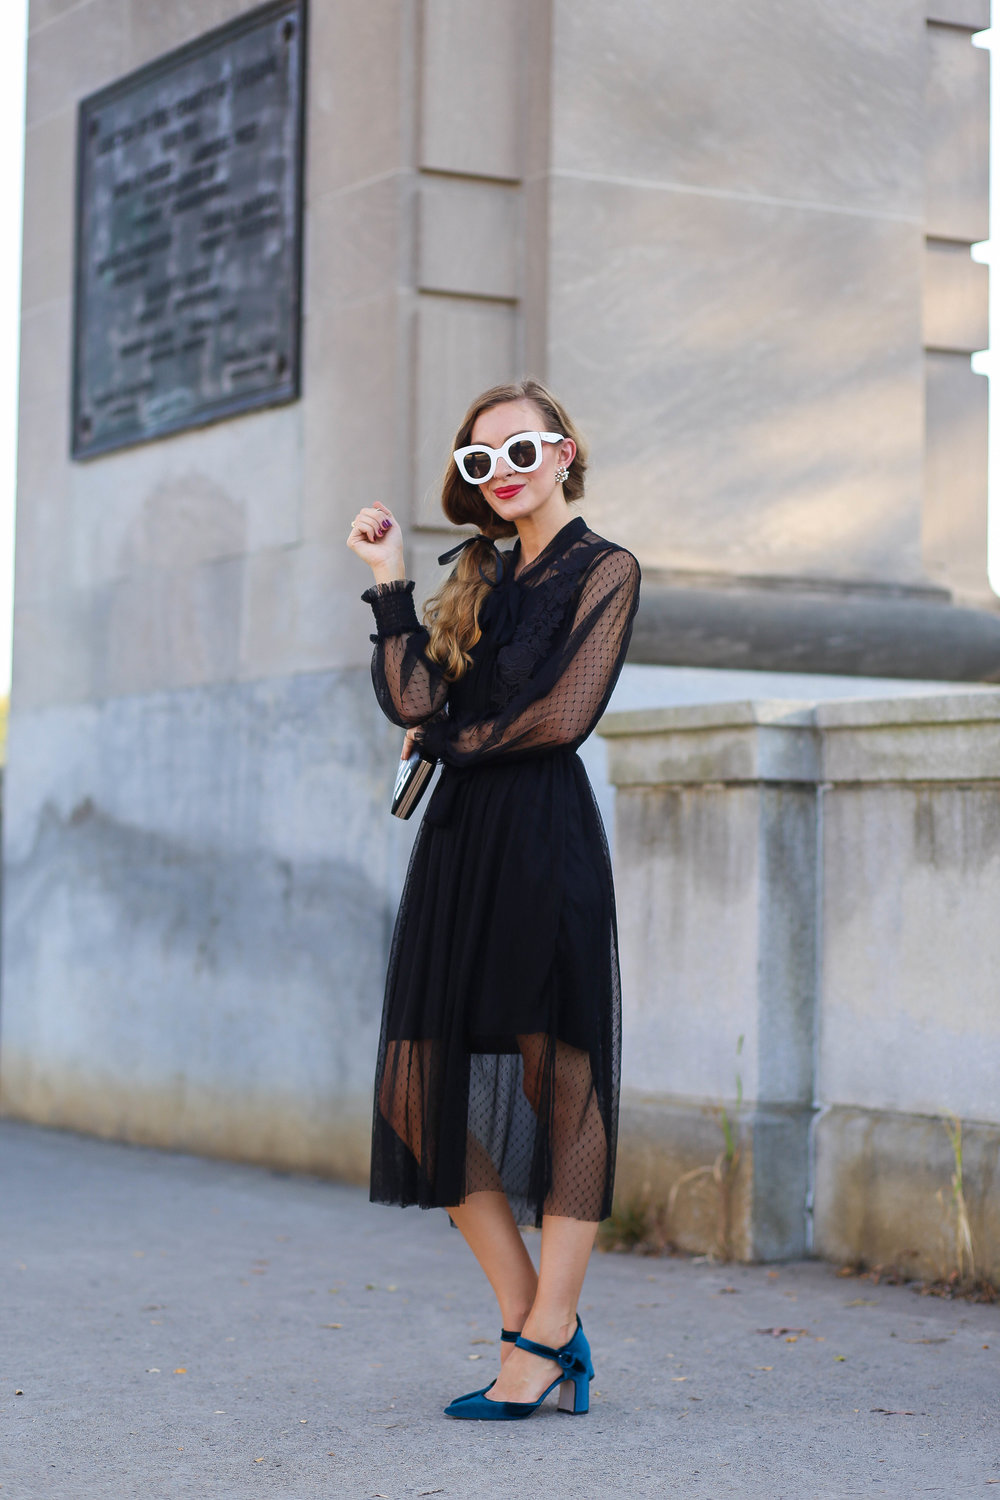 Black Dress. Teal Velvet Heels. White Sunglasses. Black Clutch. Evening Style. Fall Style.